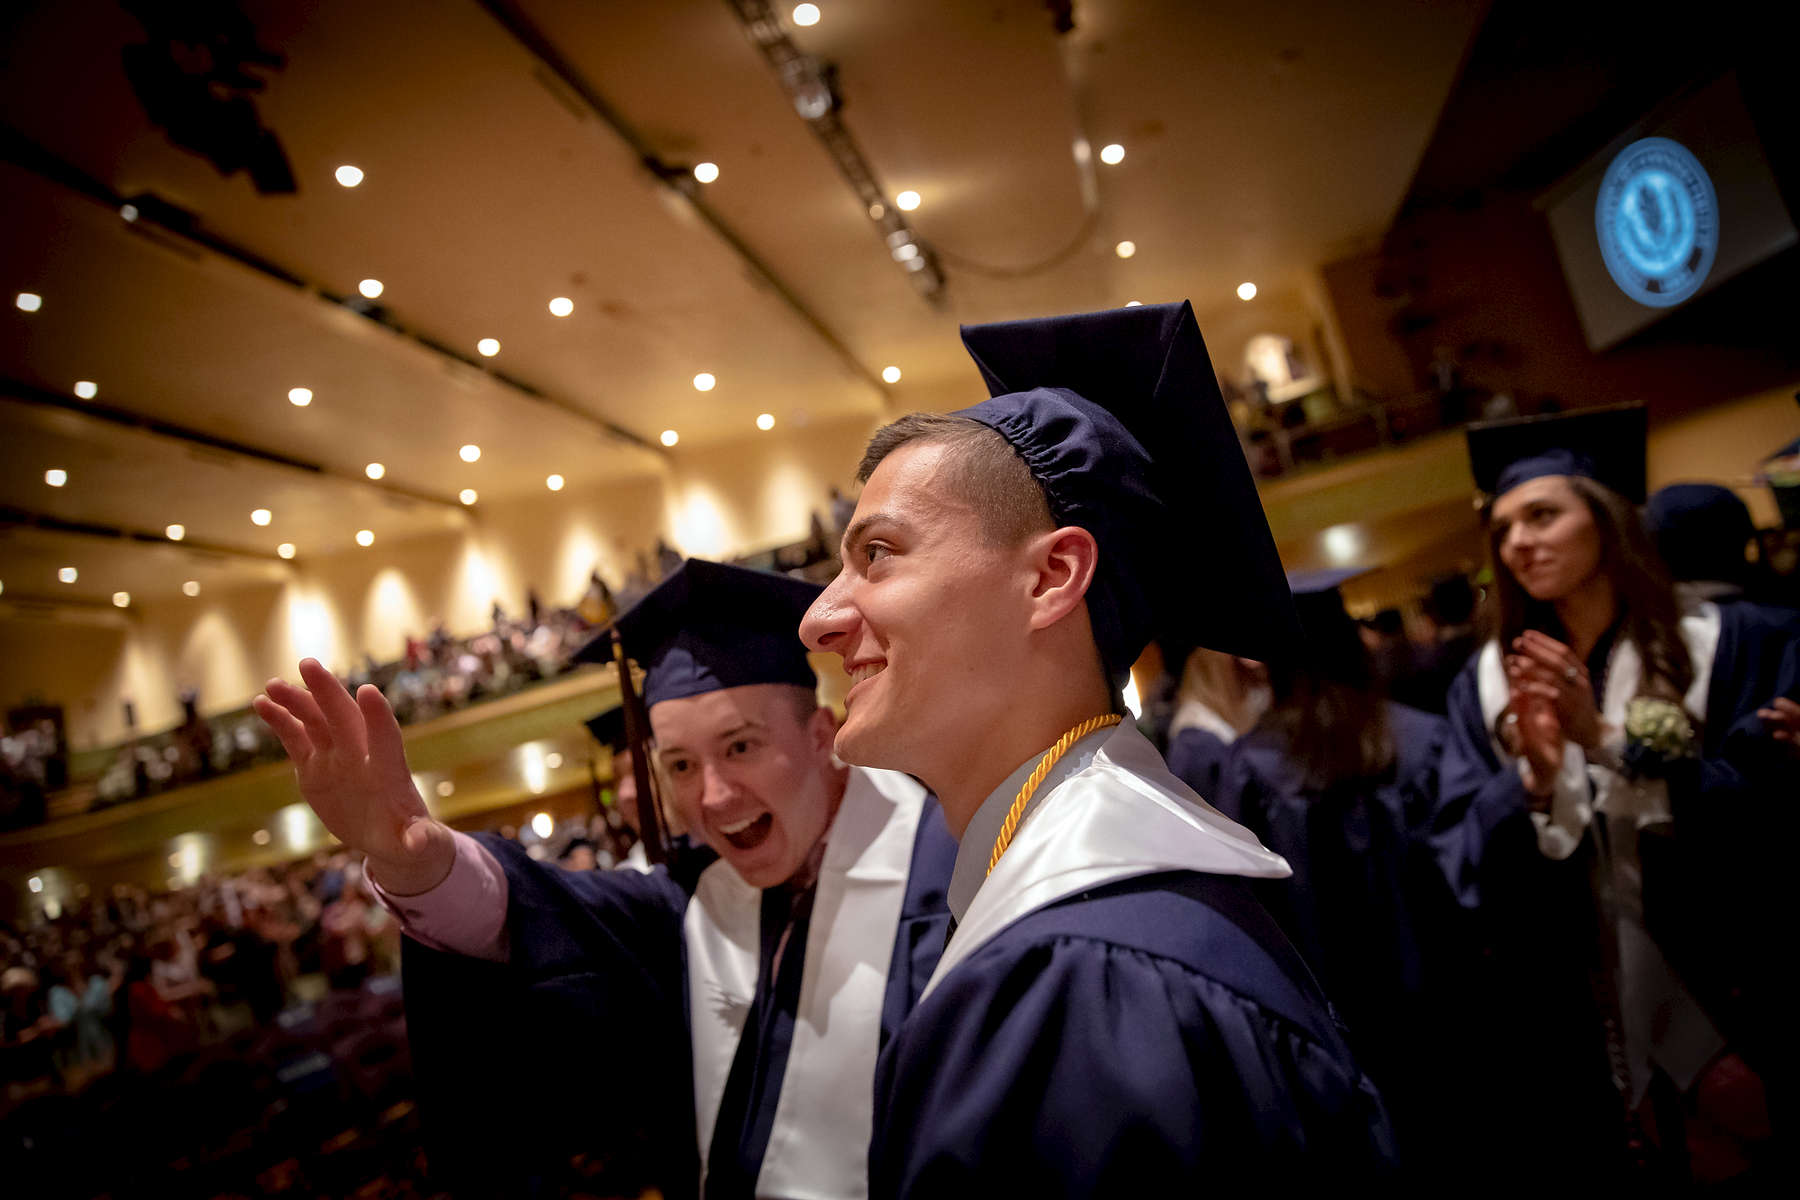 Students wave during the Spring Commencement ceremony for the UConn School of Fine Arts Saturday, May 11, 2019 at the Jorgensen Center for the Performing Arts in Storrs.